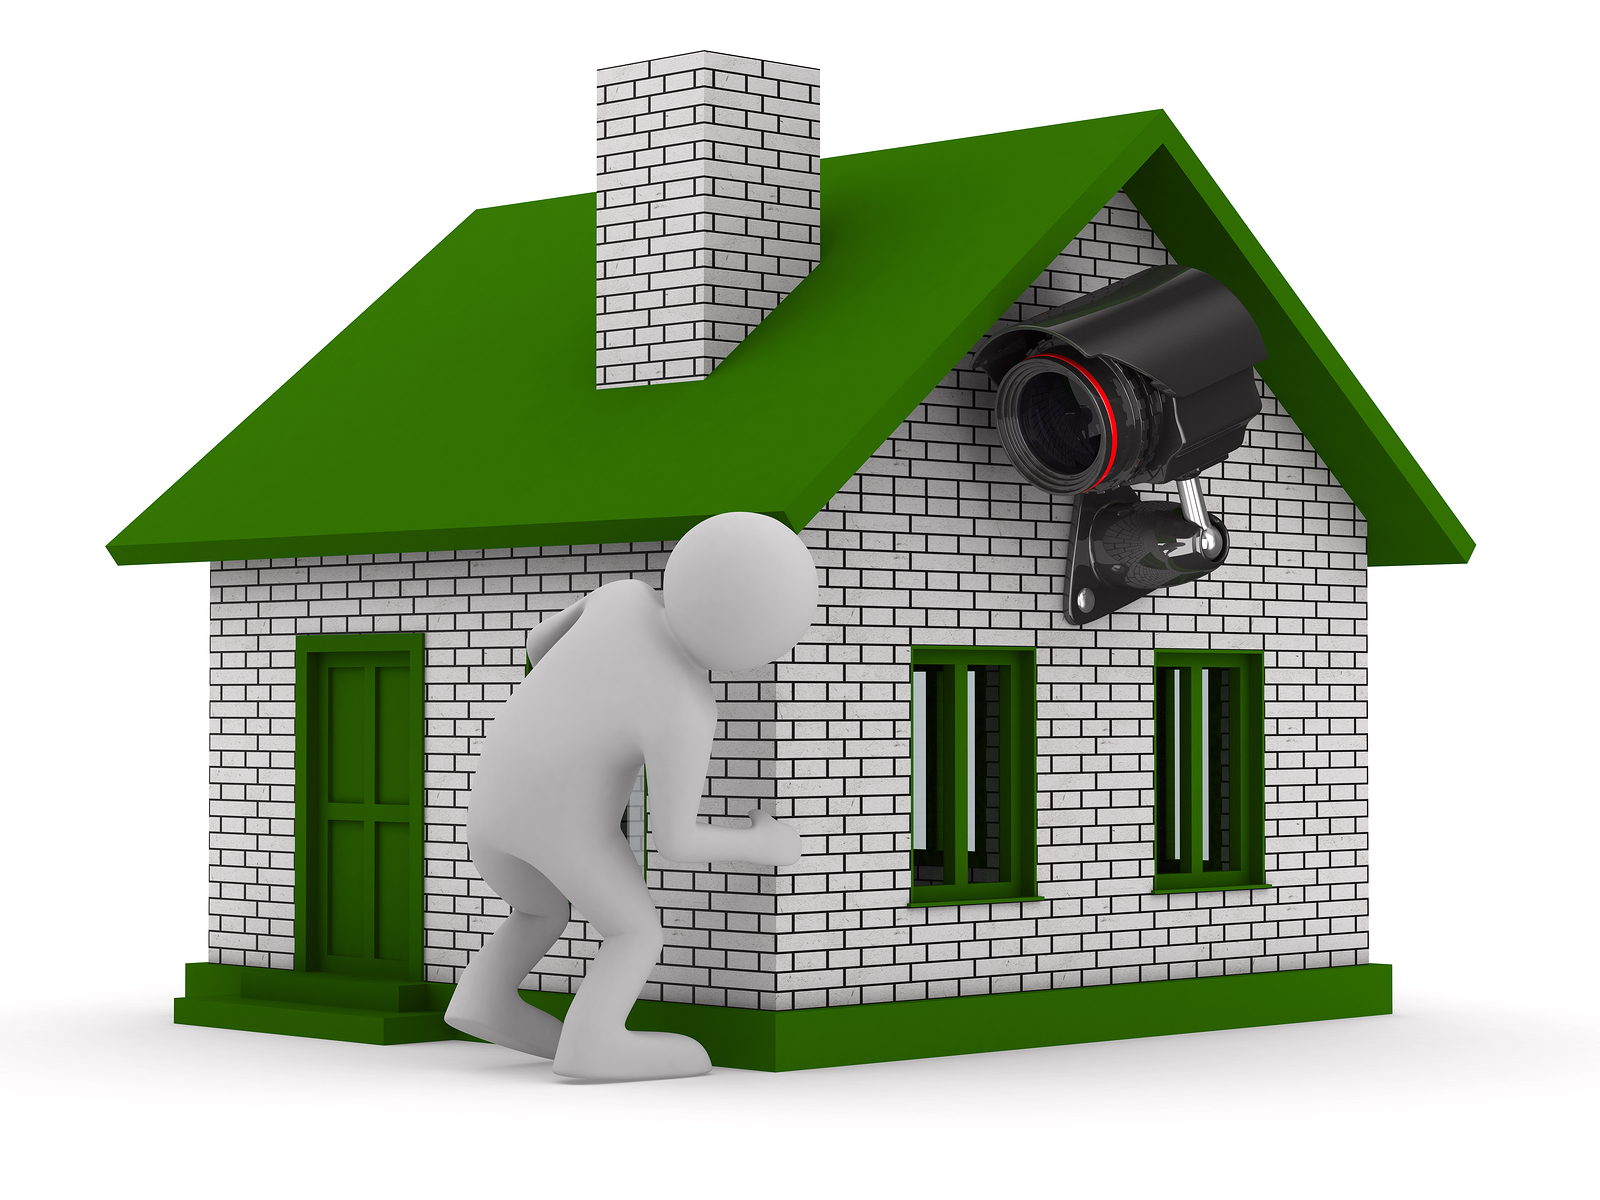 green home security - Home Security Systems